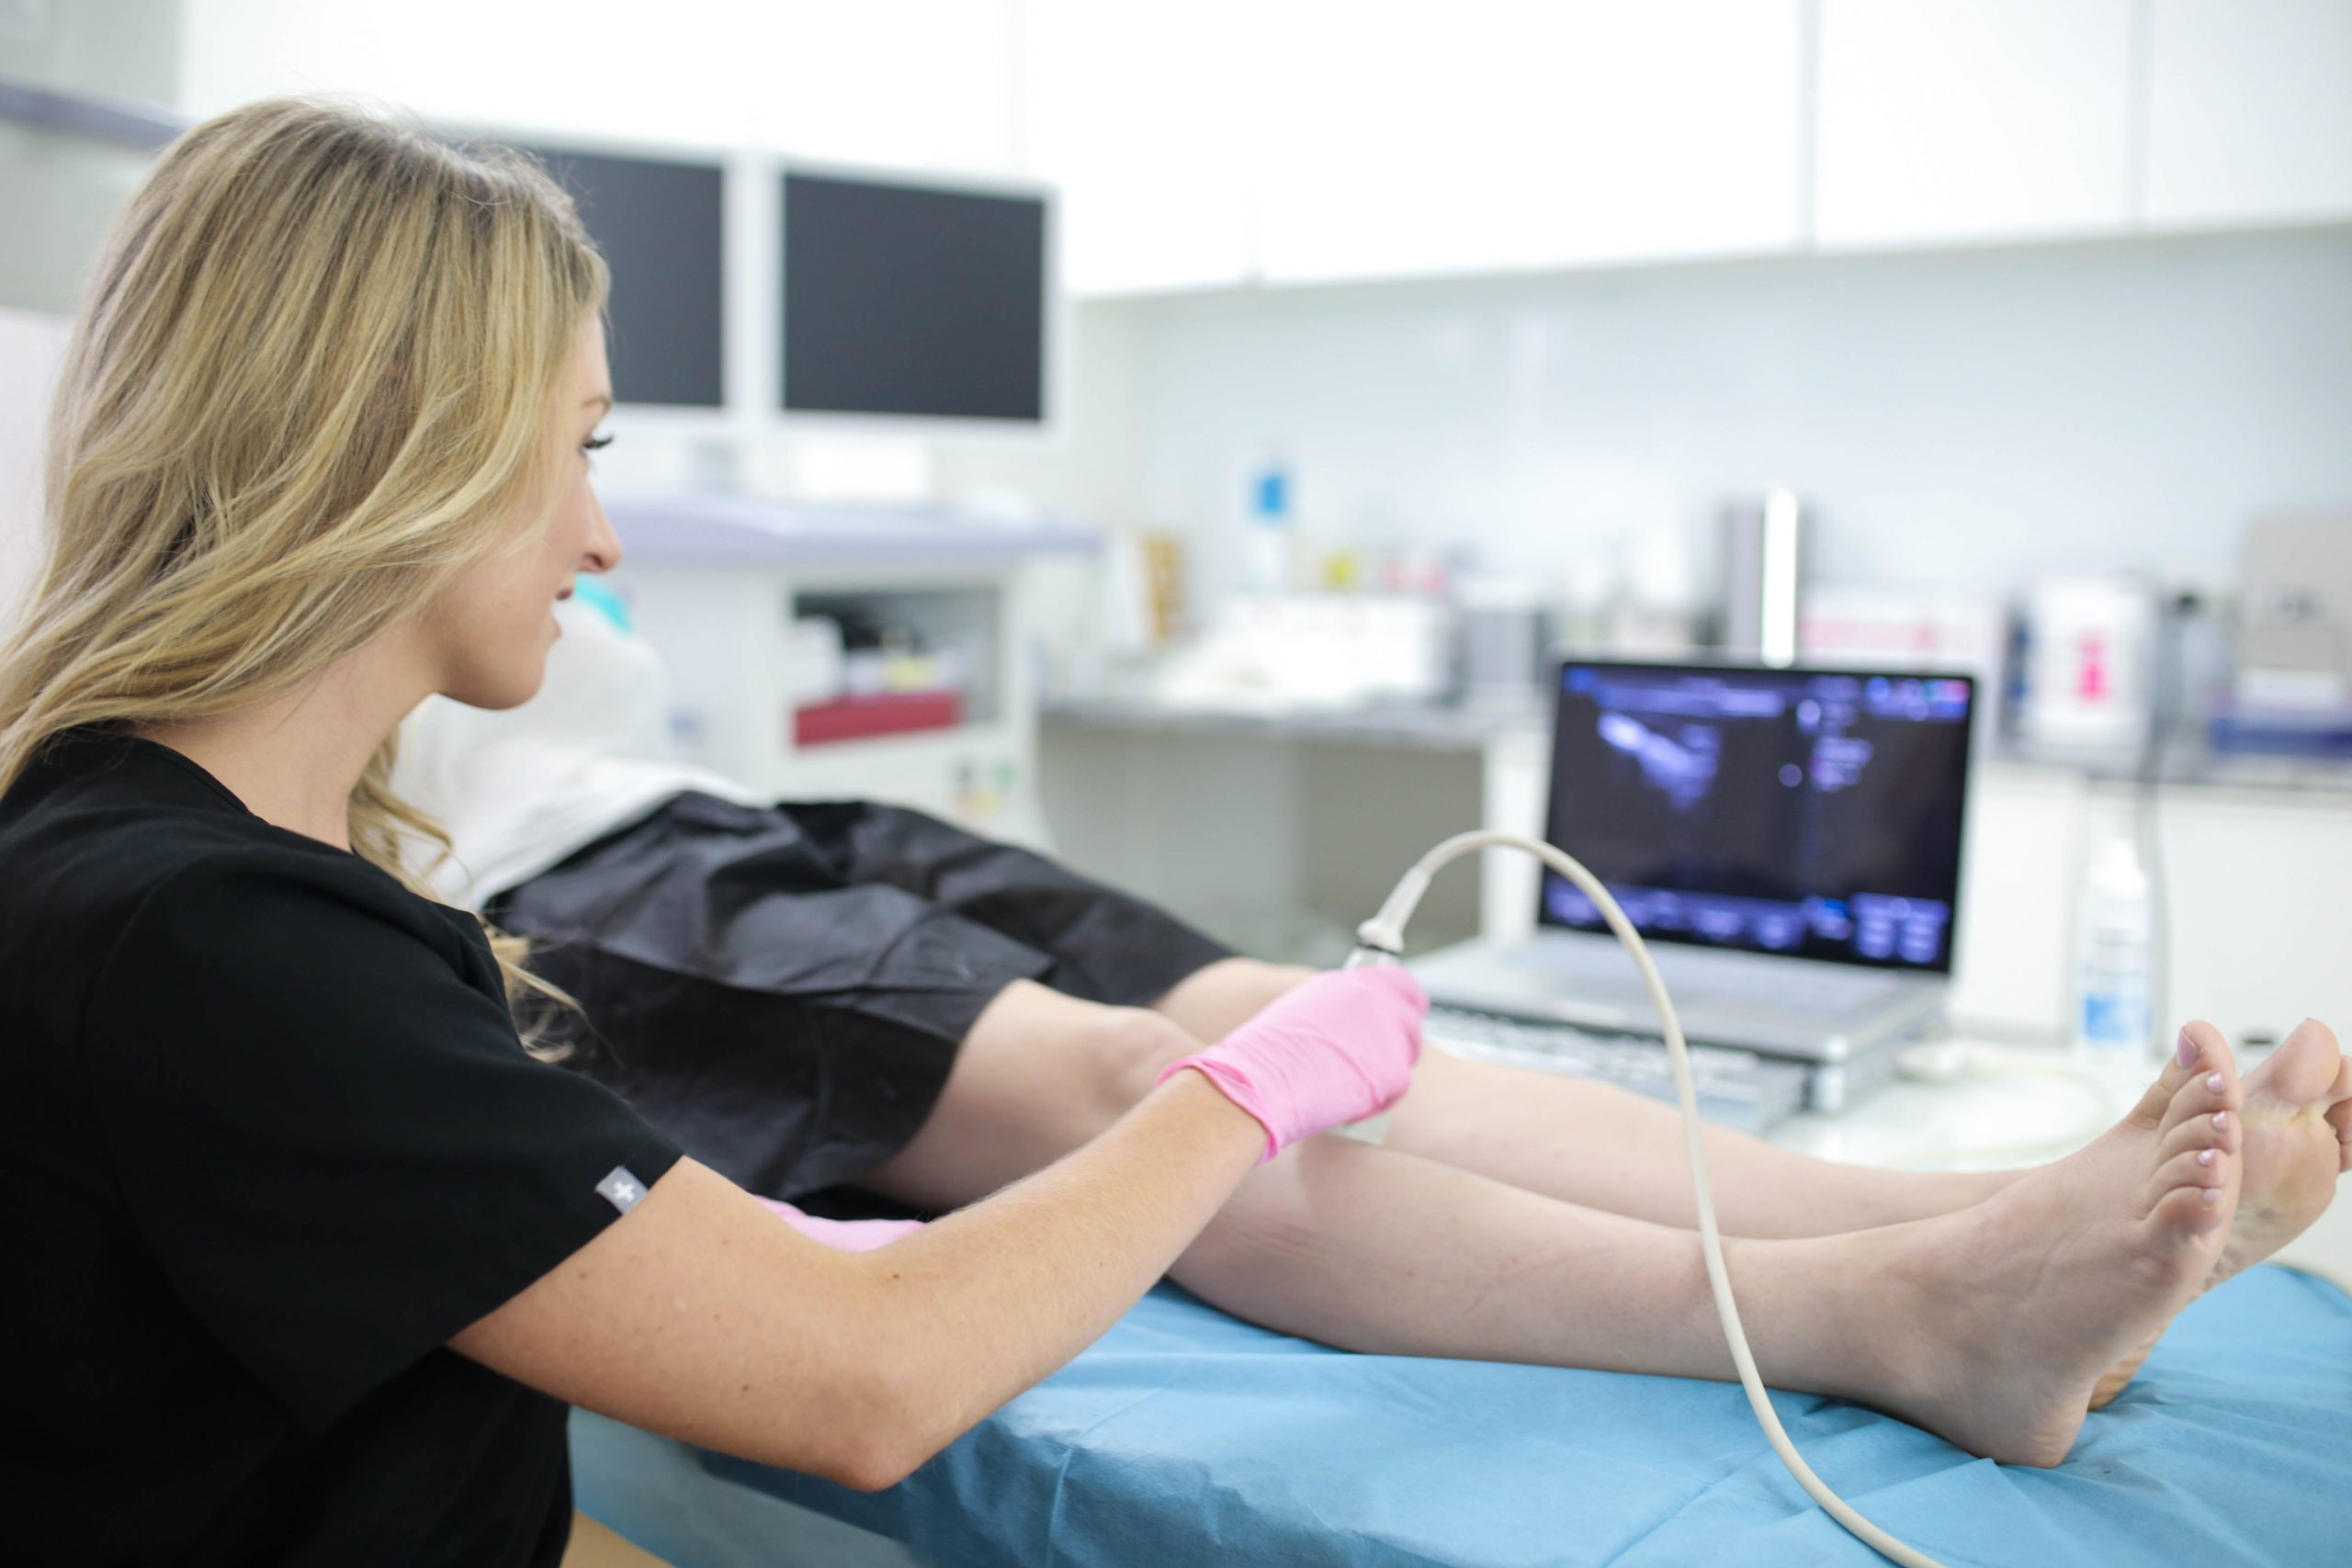 Vein Treatment Clinic provides the best minimally invasive varicose vein treatments in Suffolk County. This article provides a comprehensive guide to our vein treatments.